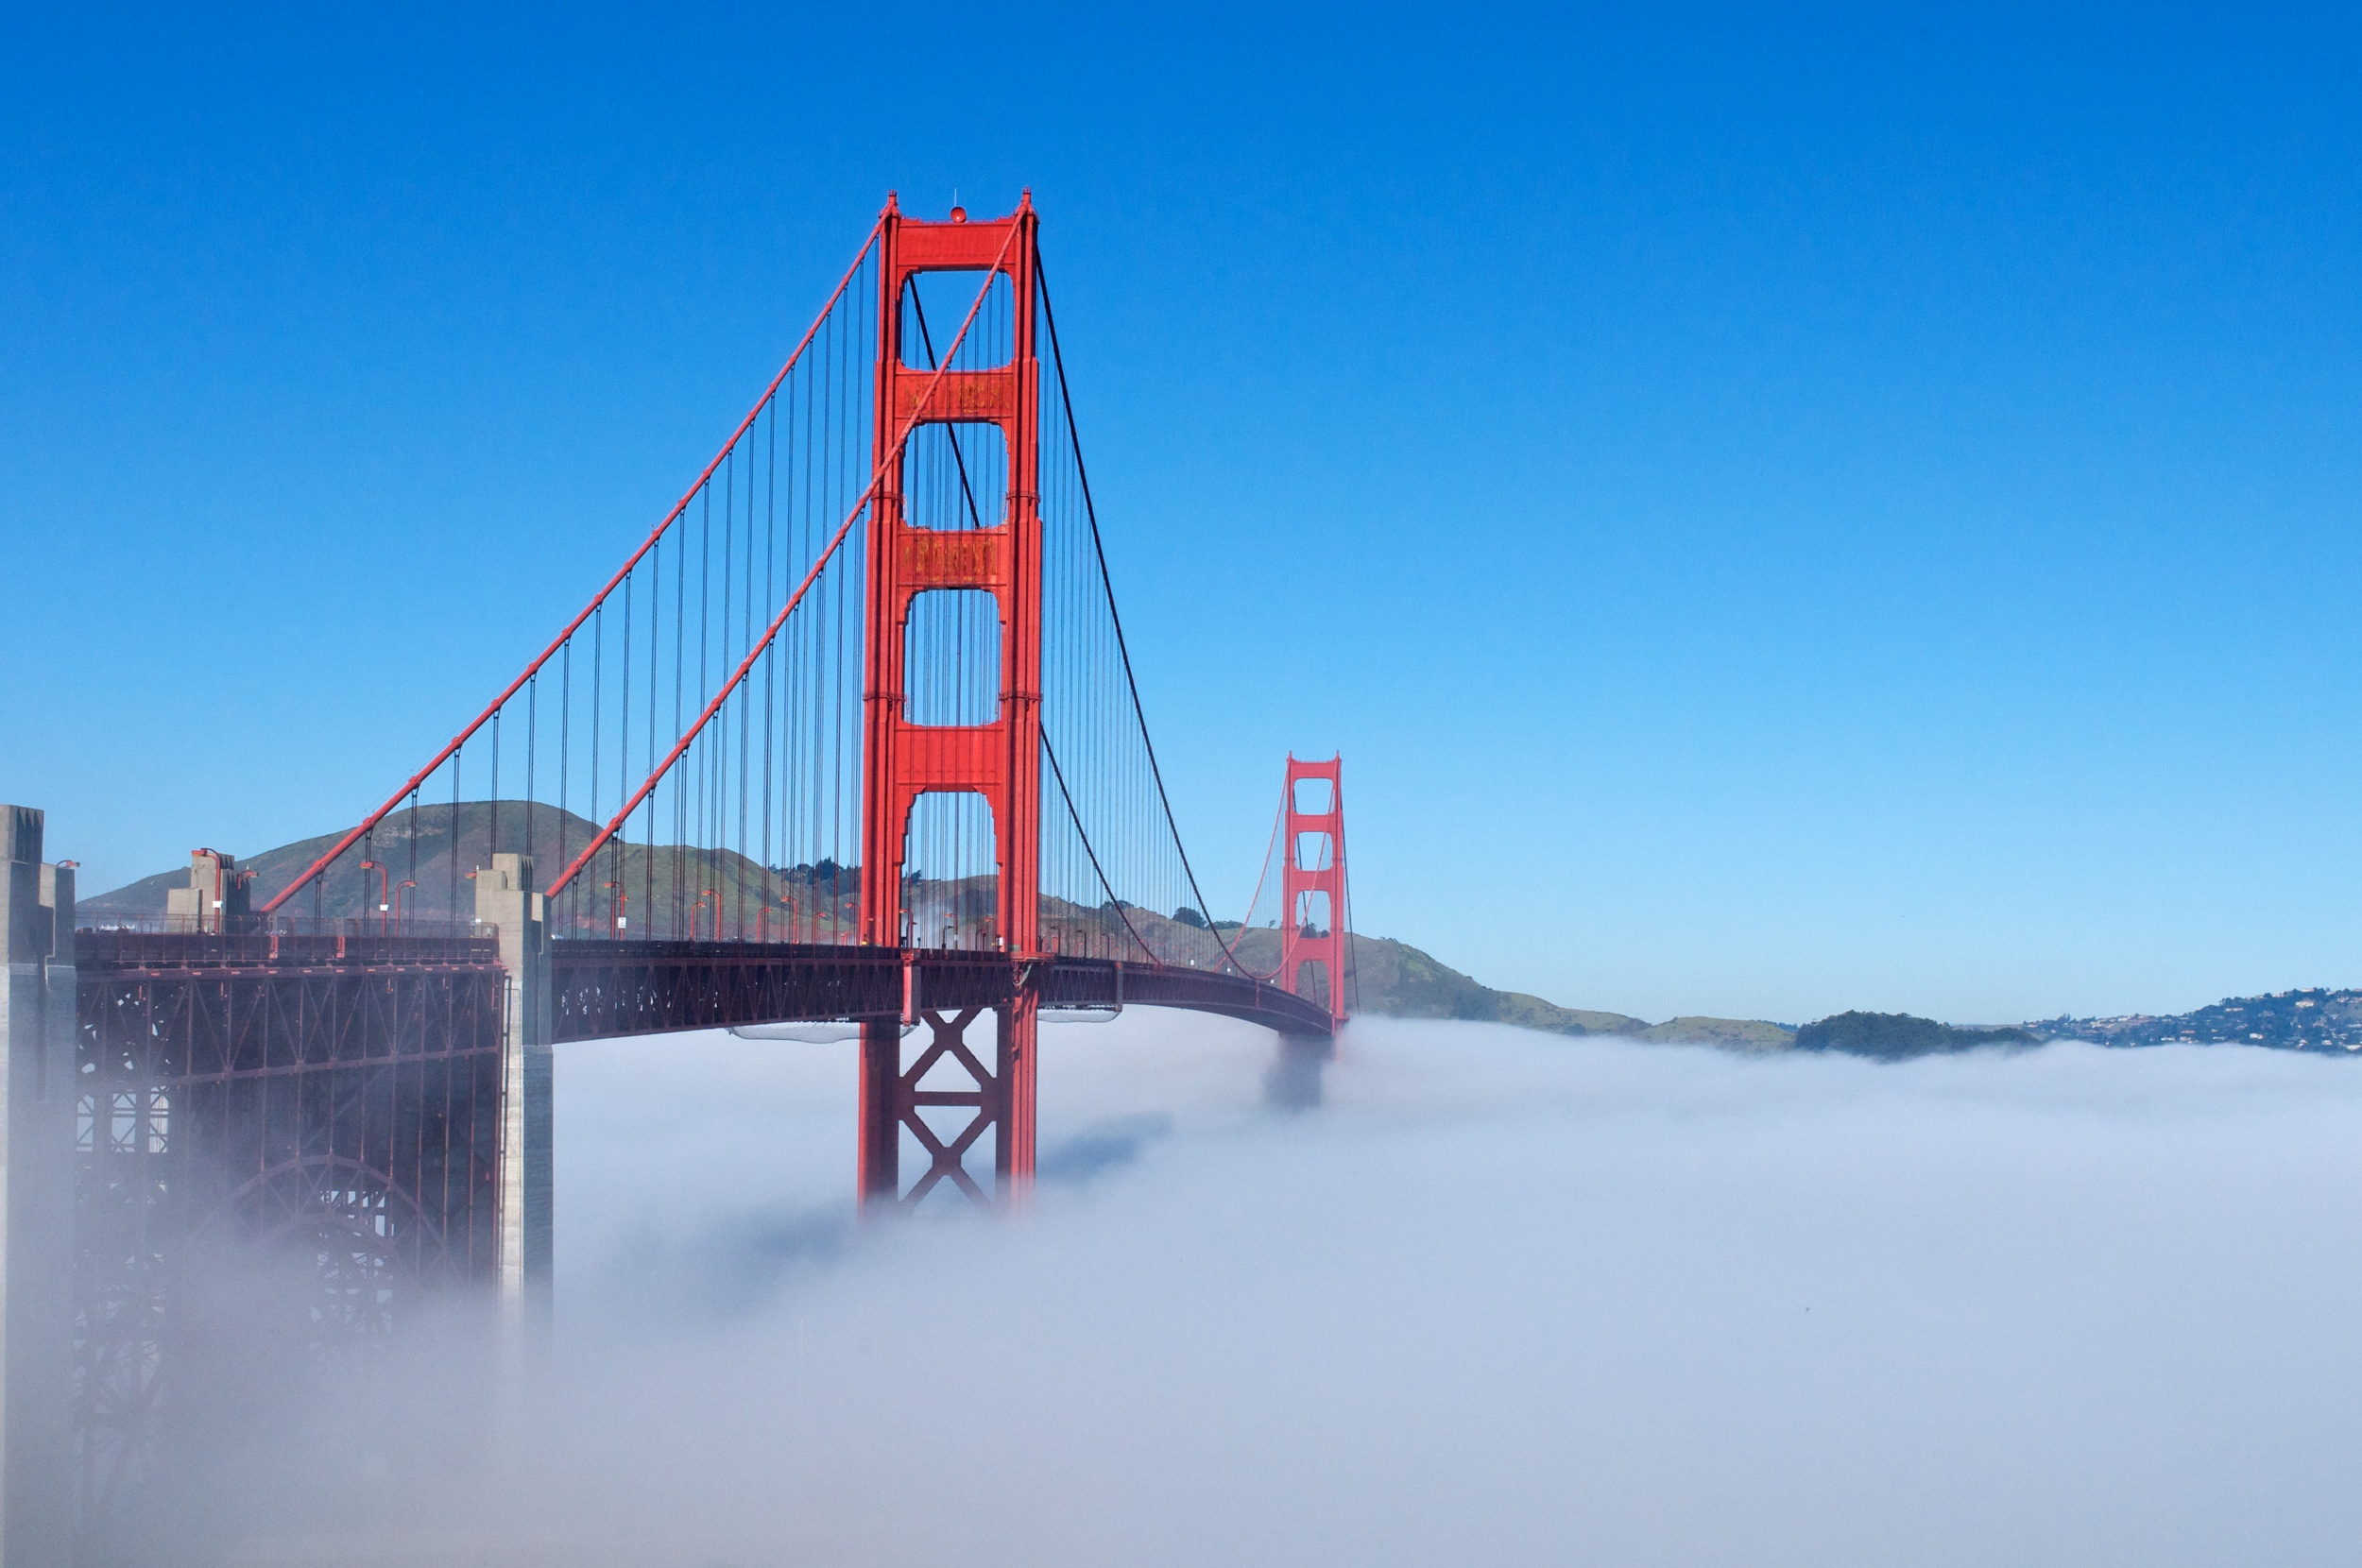 GOLDEN GATE BRIDGE FLOATING ON FOG